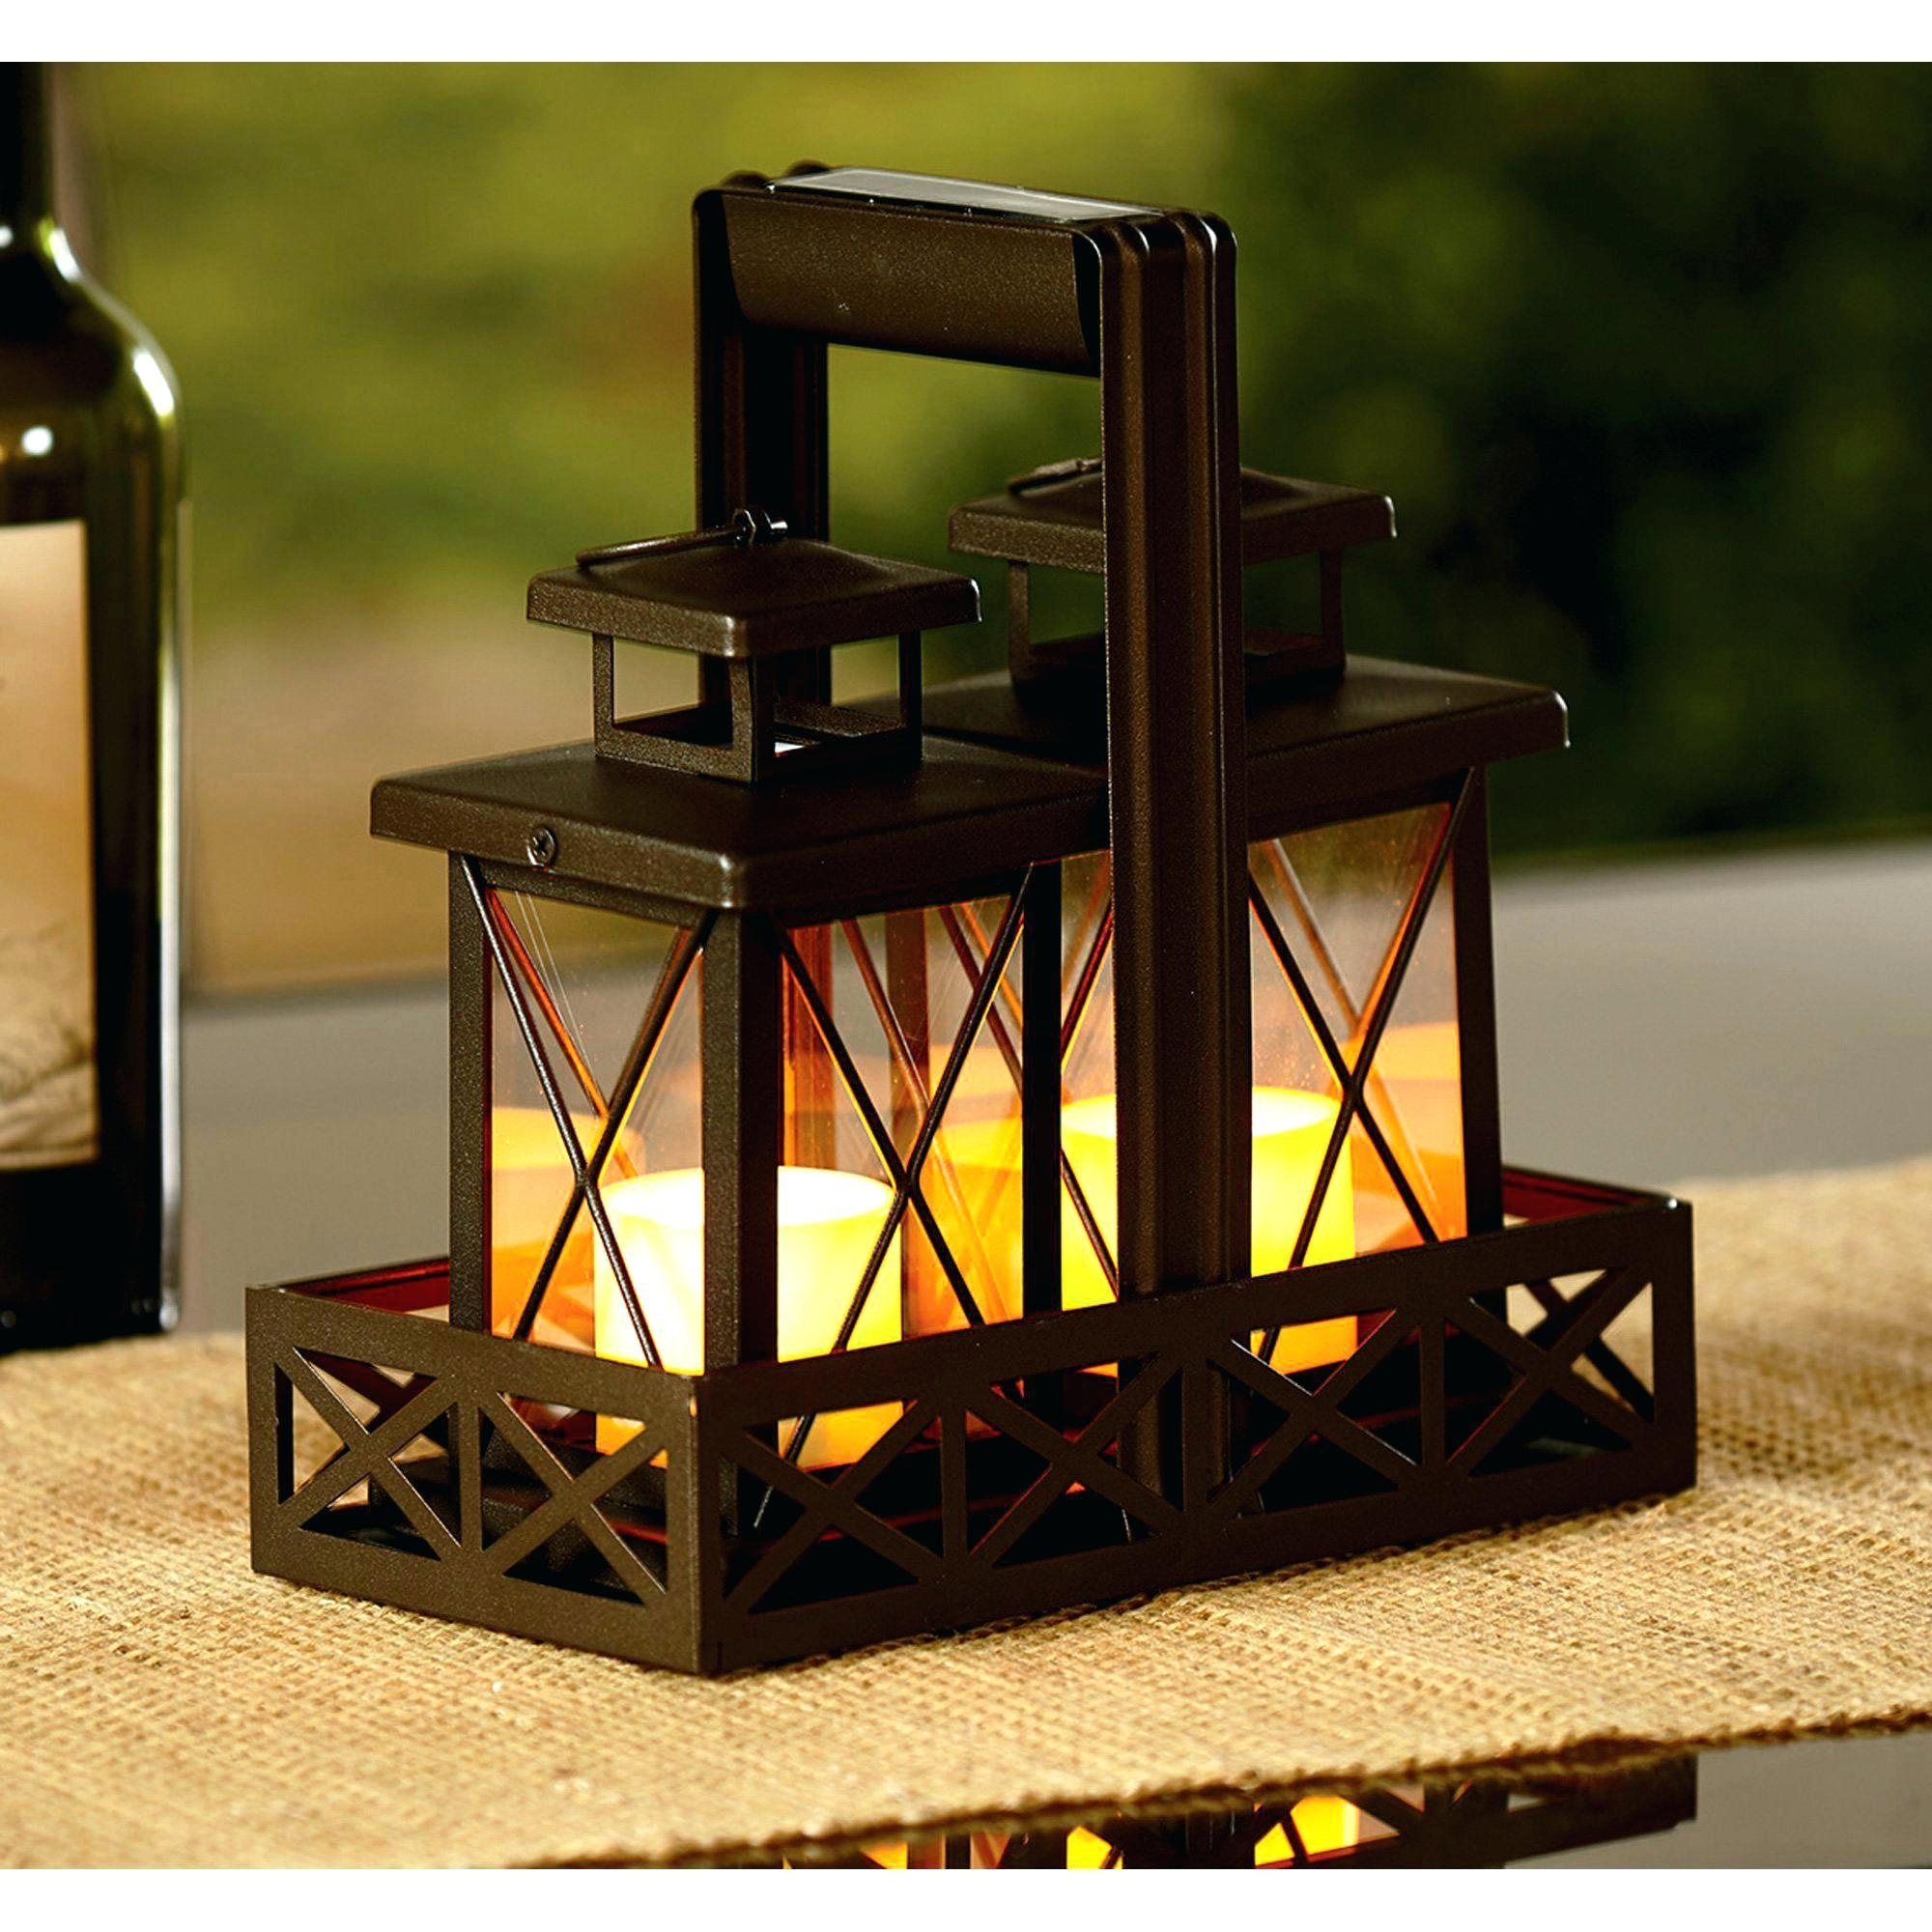 Outdoor Oil Lamps For Patio Table Sale – Pocketworldcupschedule Regarding Outdoor Oil Lanterns For Patio (View 10 of 20)